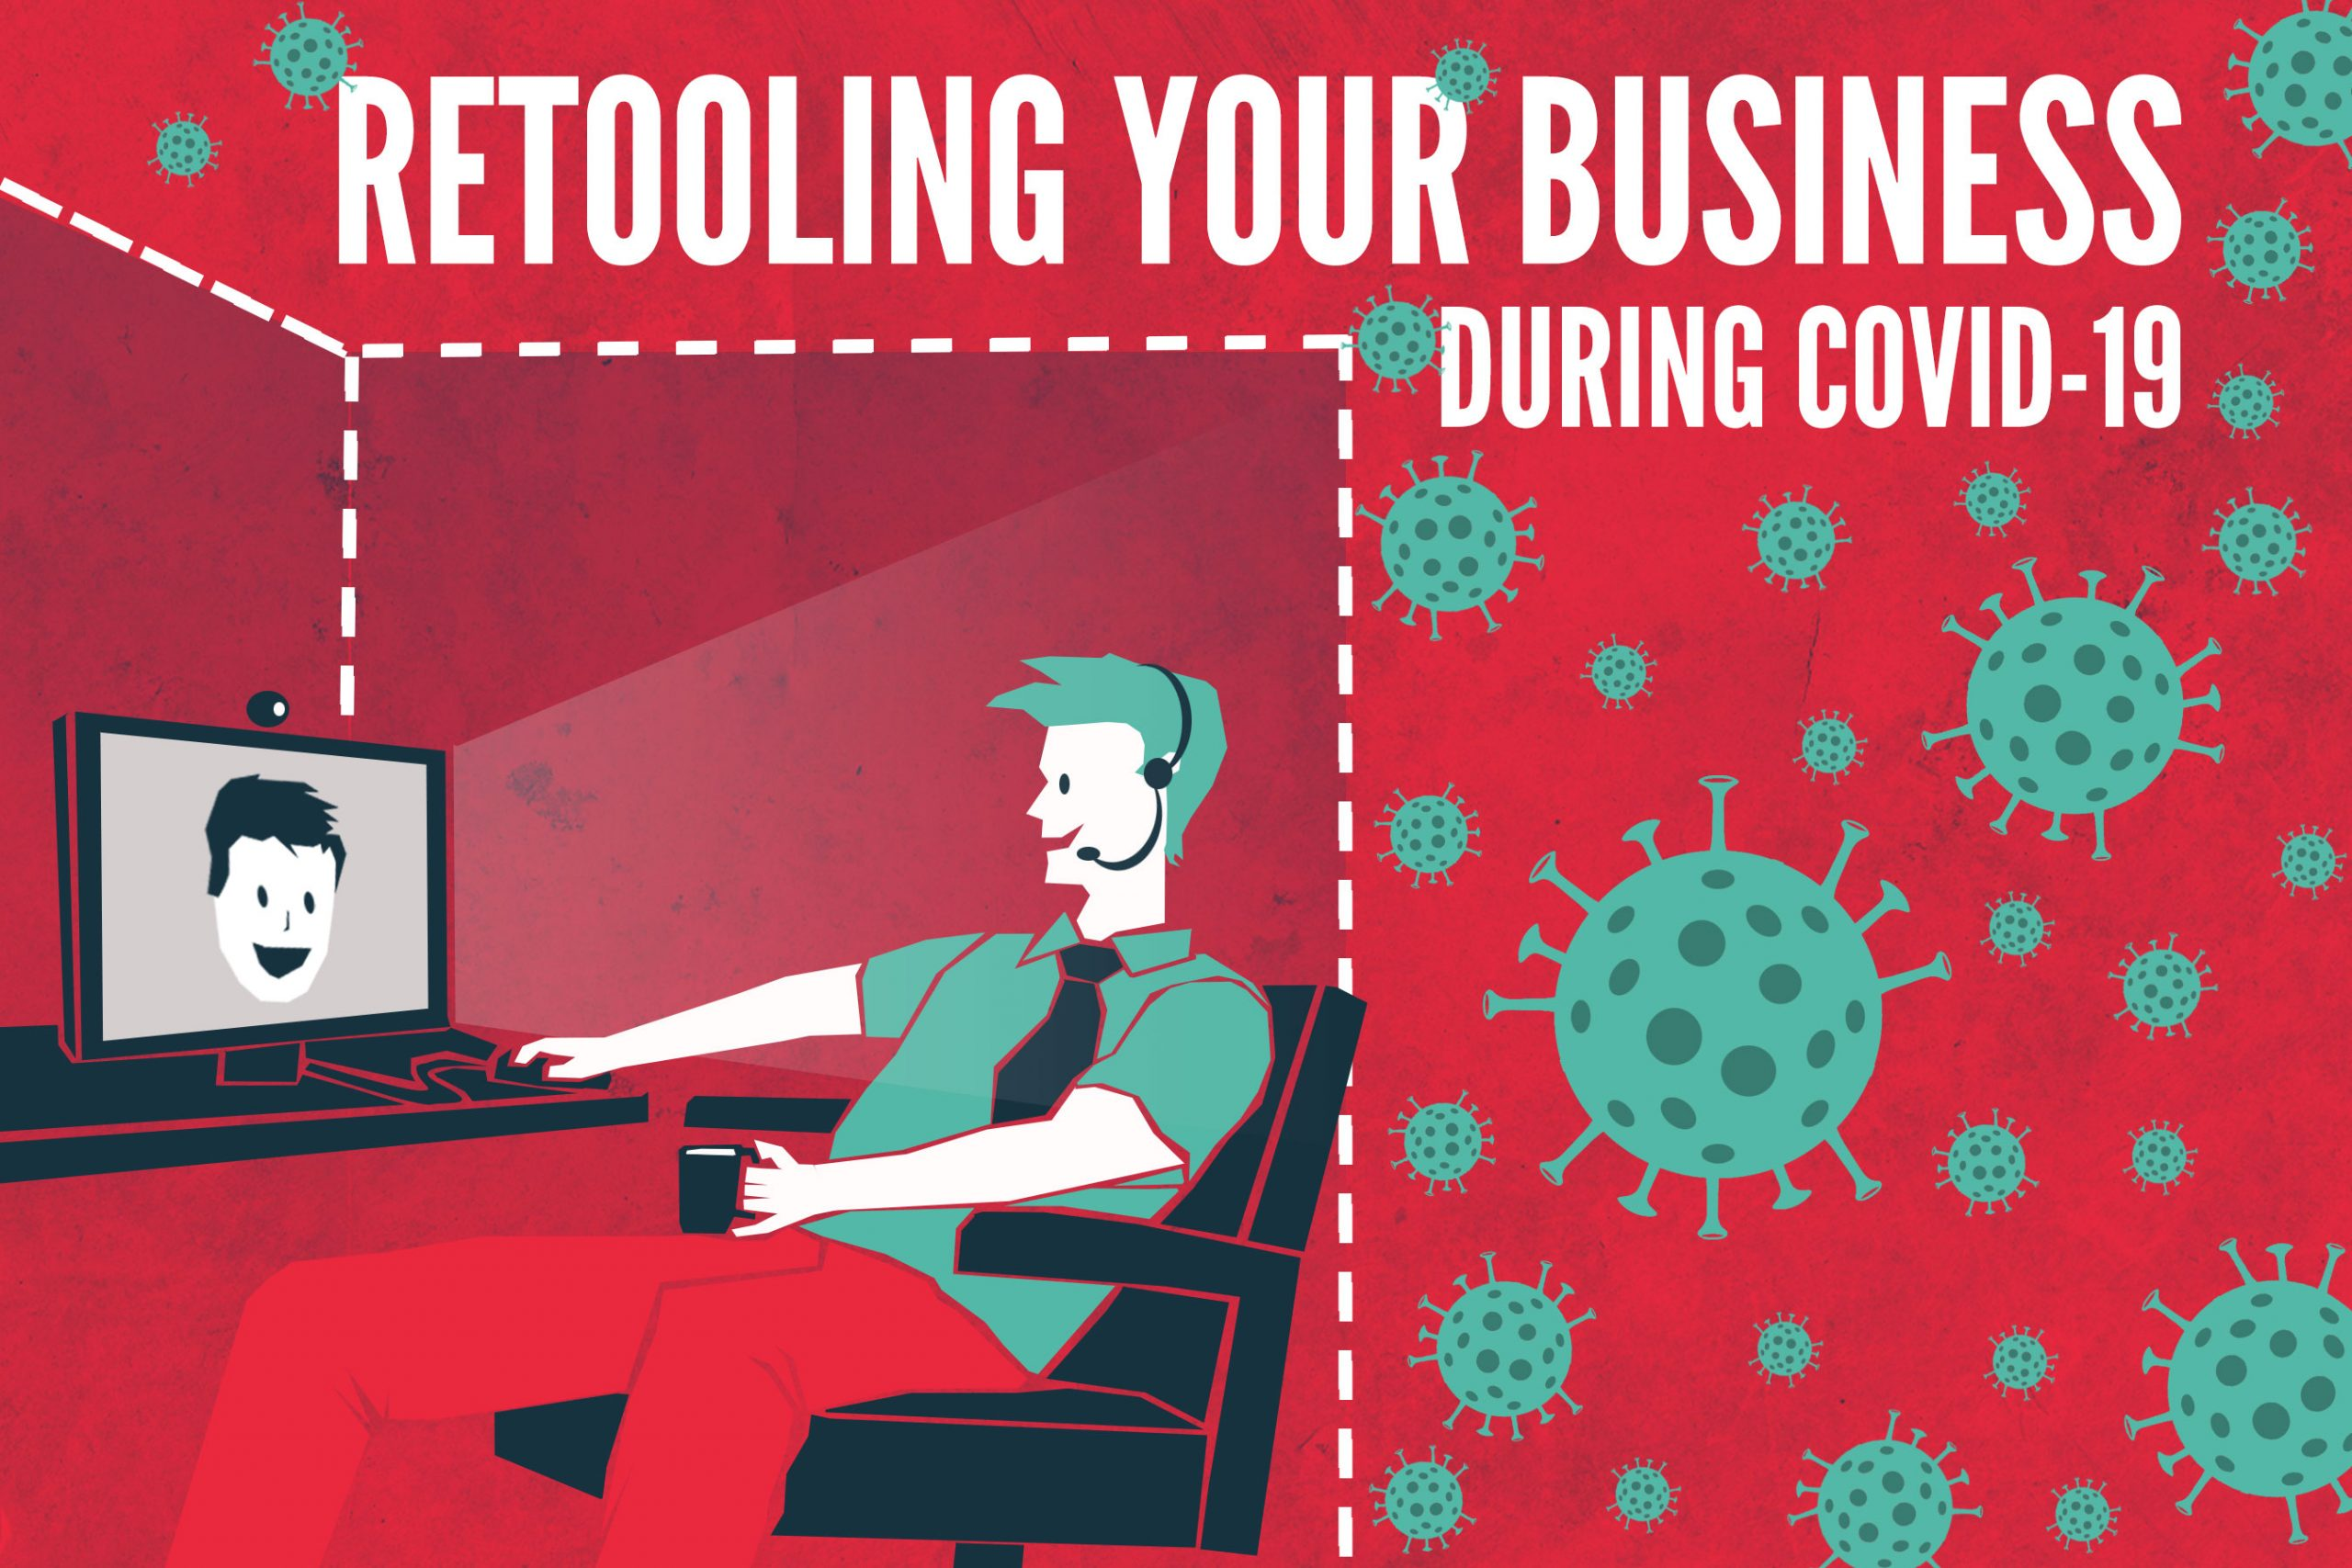 Tips for retooling your business for COVID-19